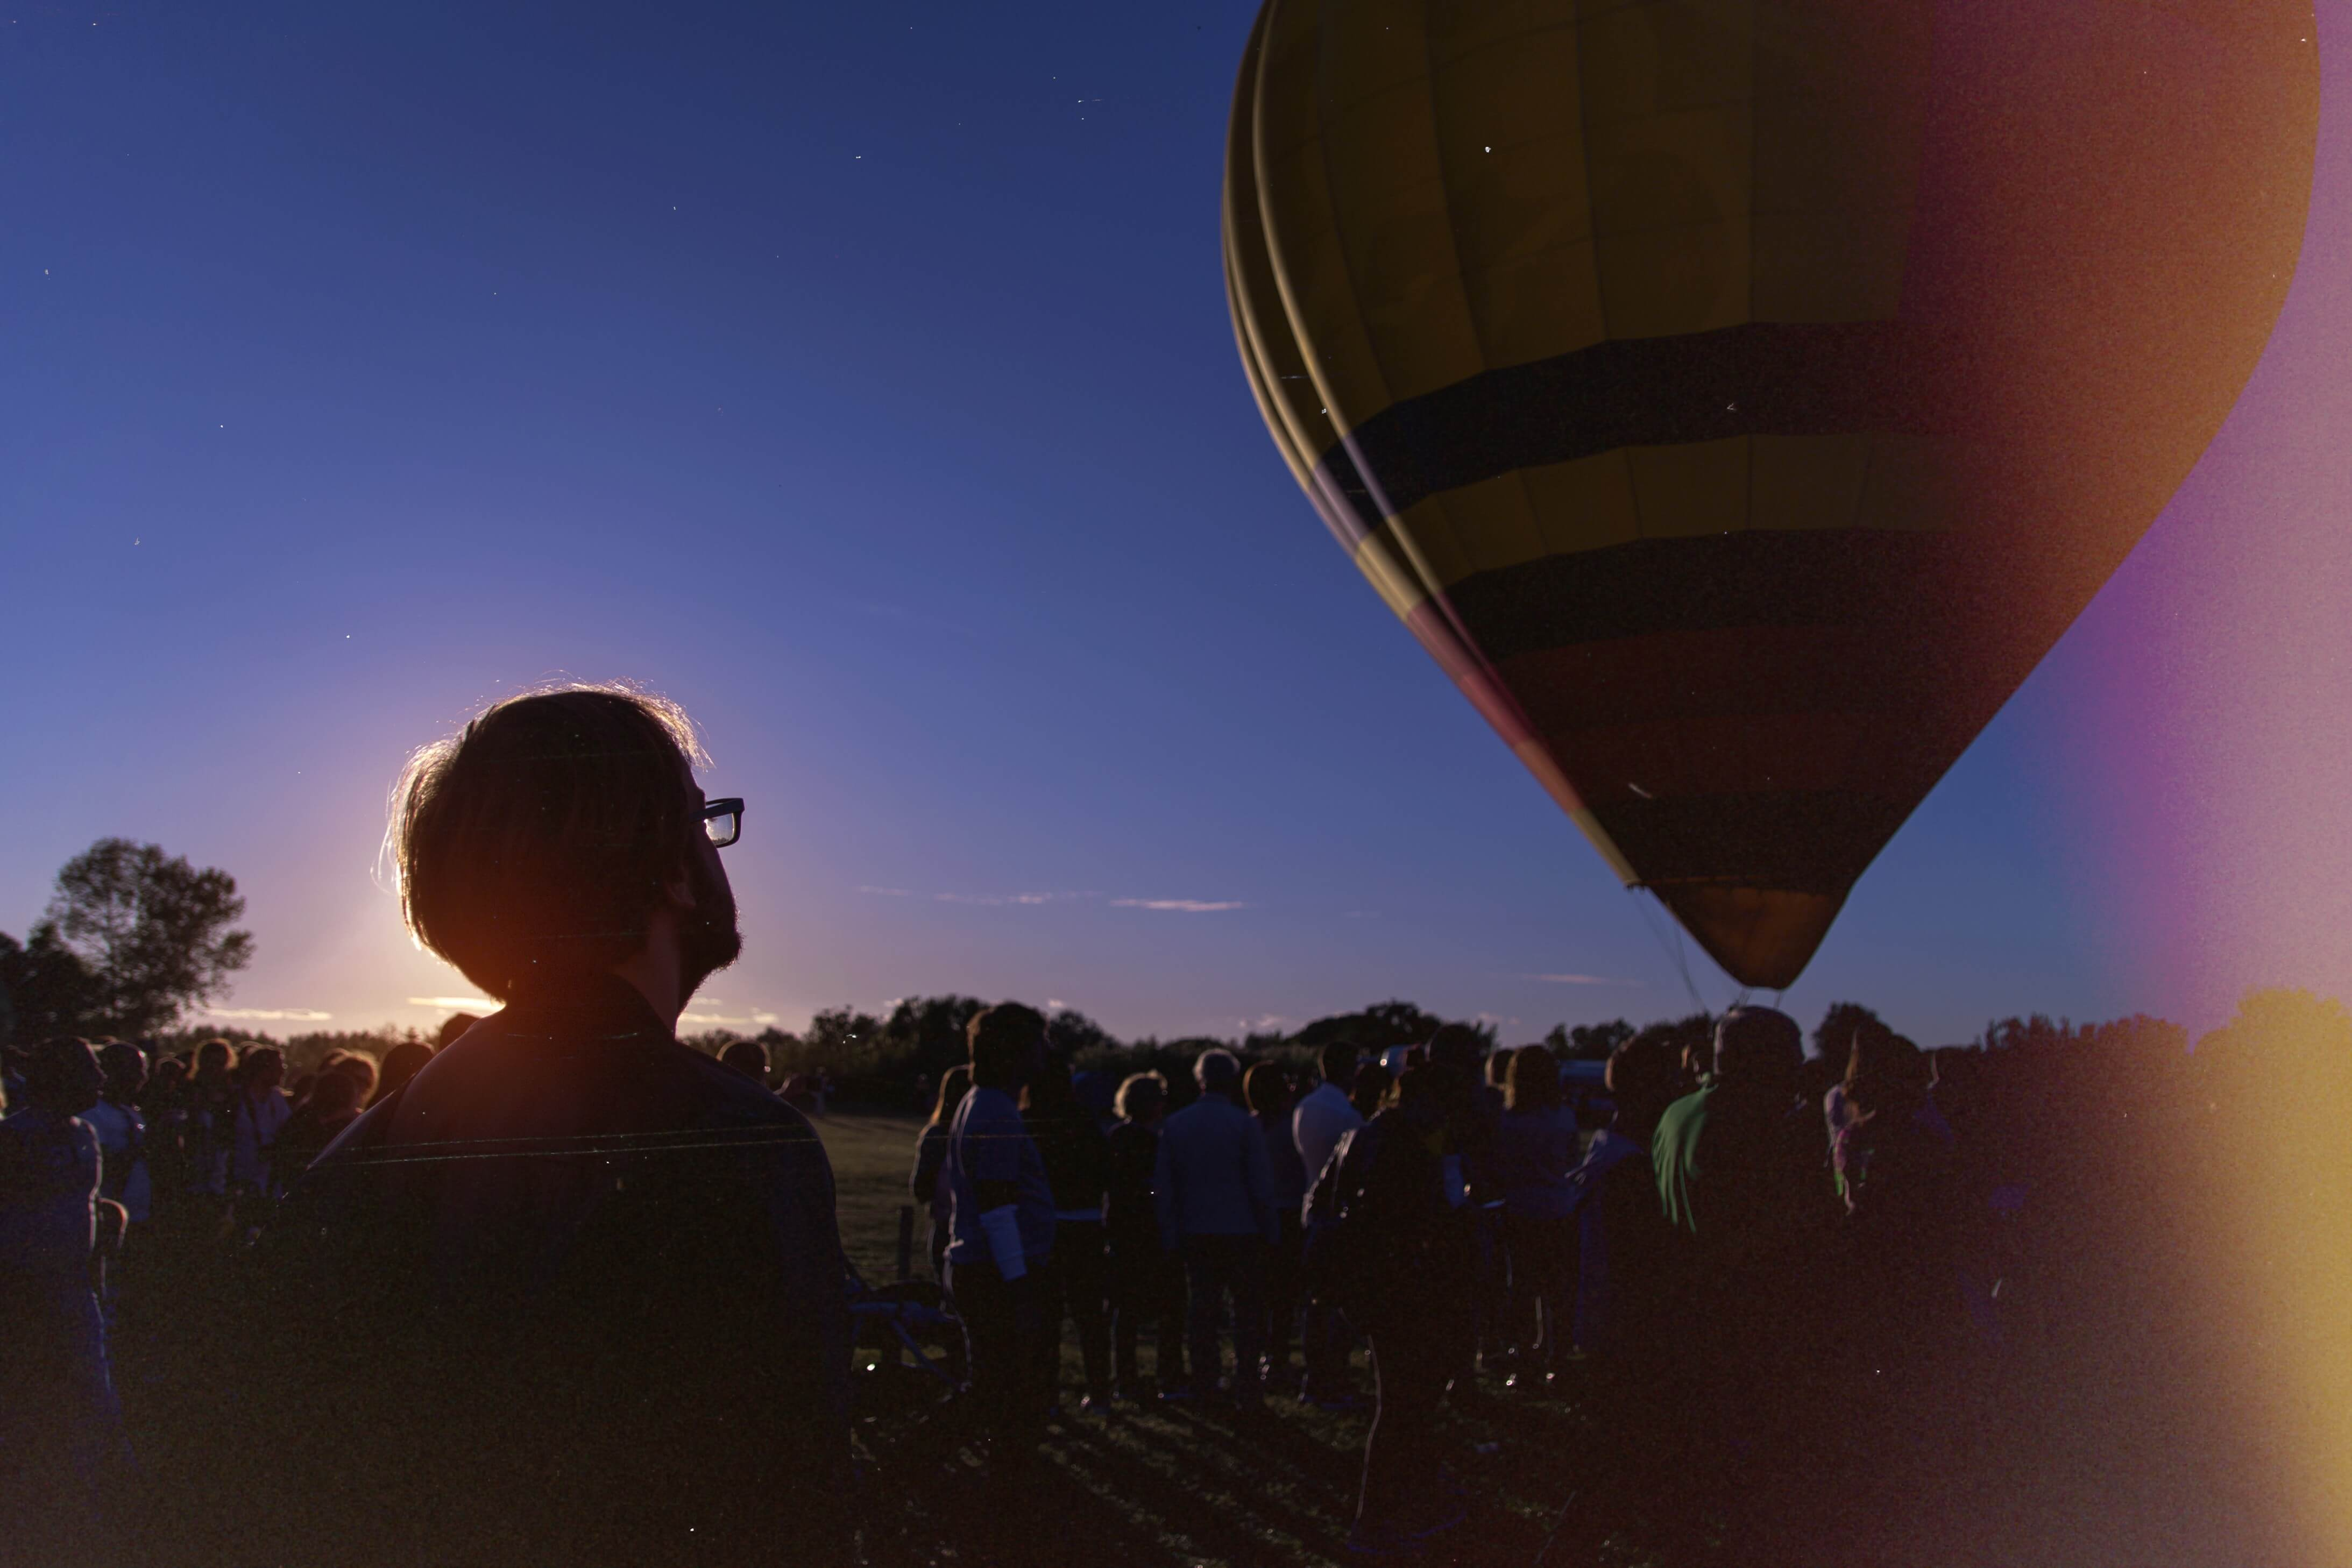 film photo hot air balloons